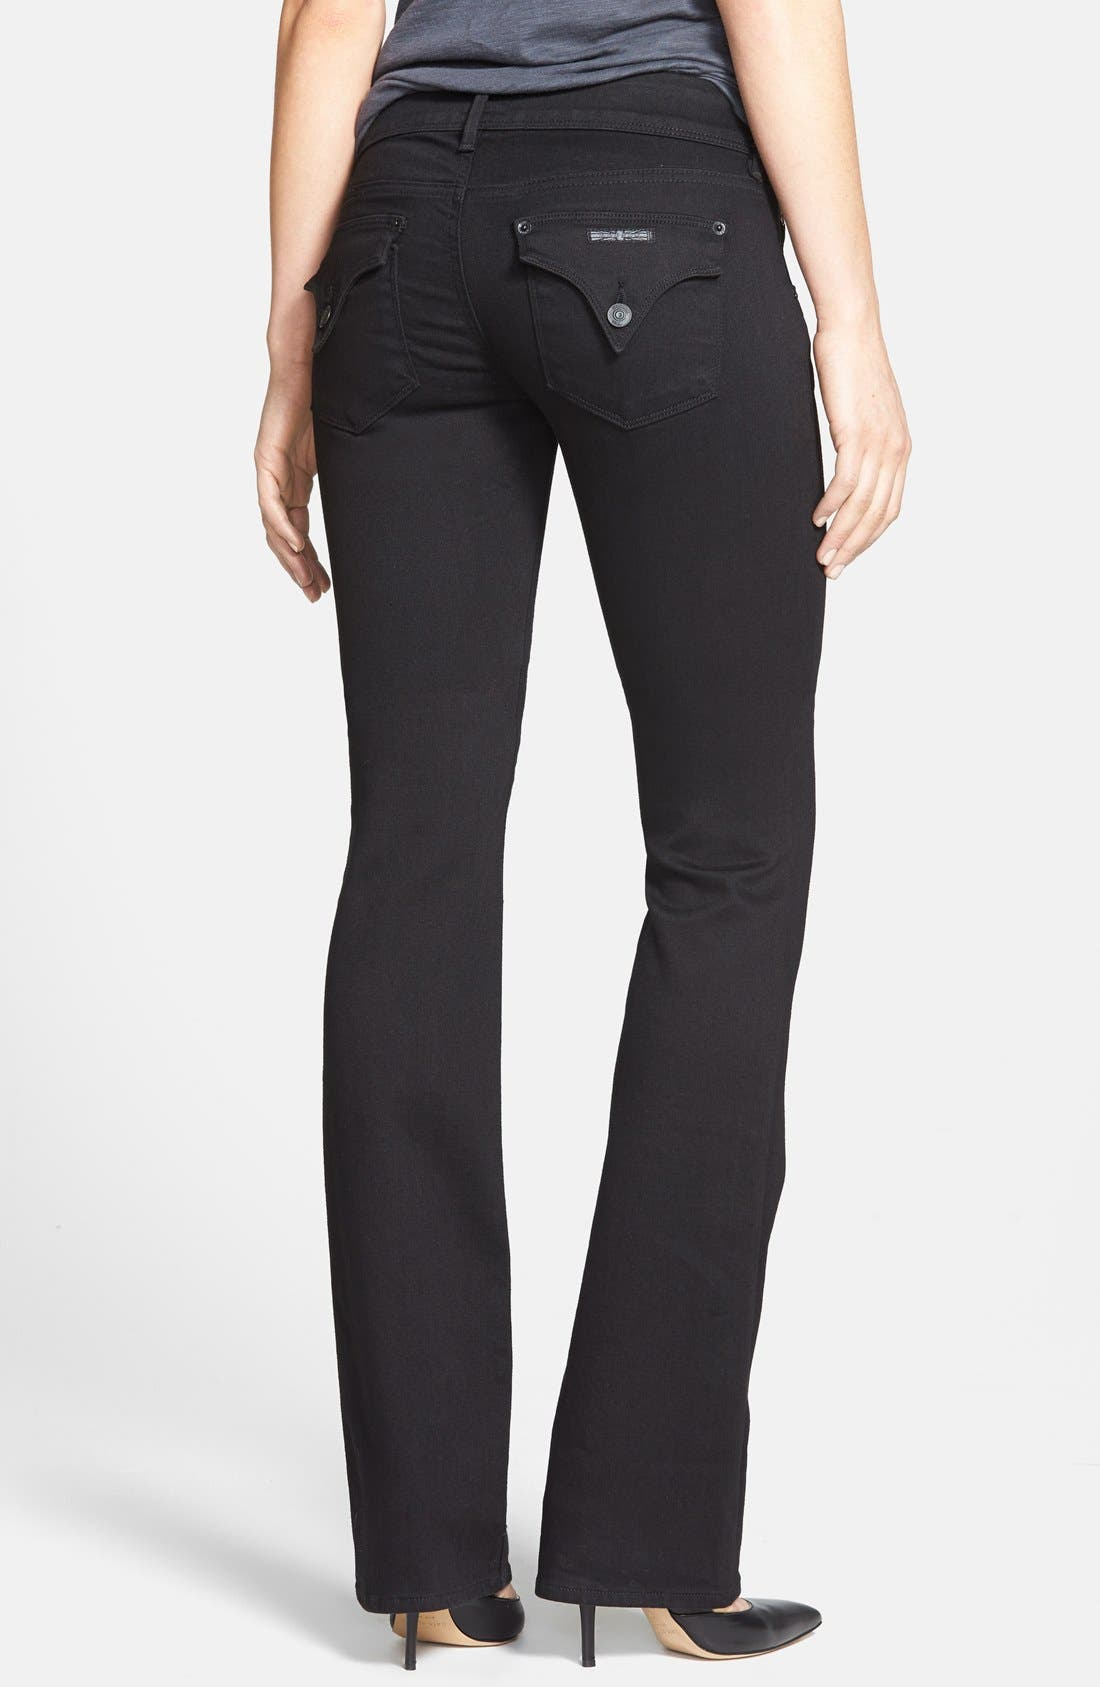 Alternate Image 2  - Hudson Jeans 'Beth' Baby Bootcut Jeans (Black) (Online Only)